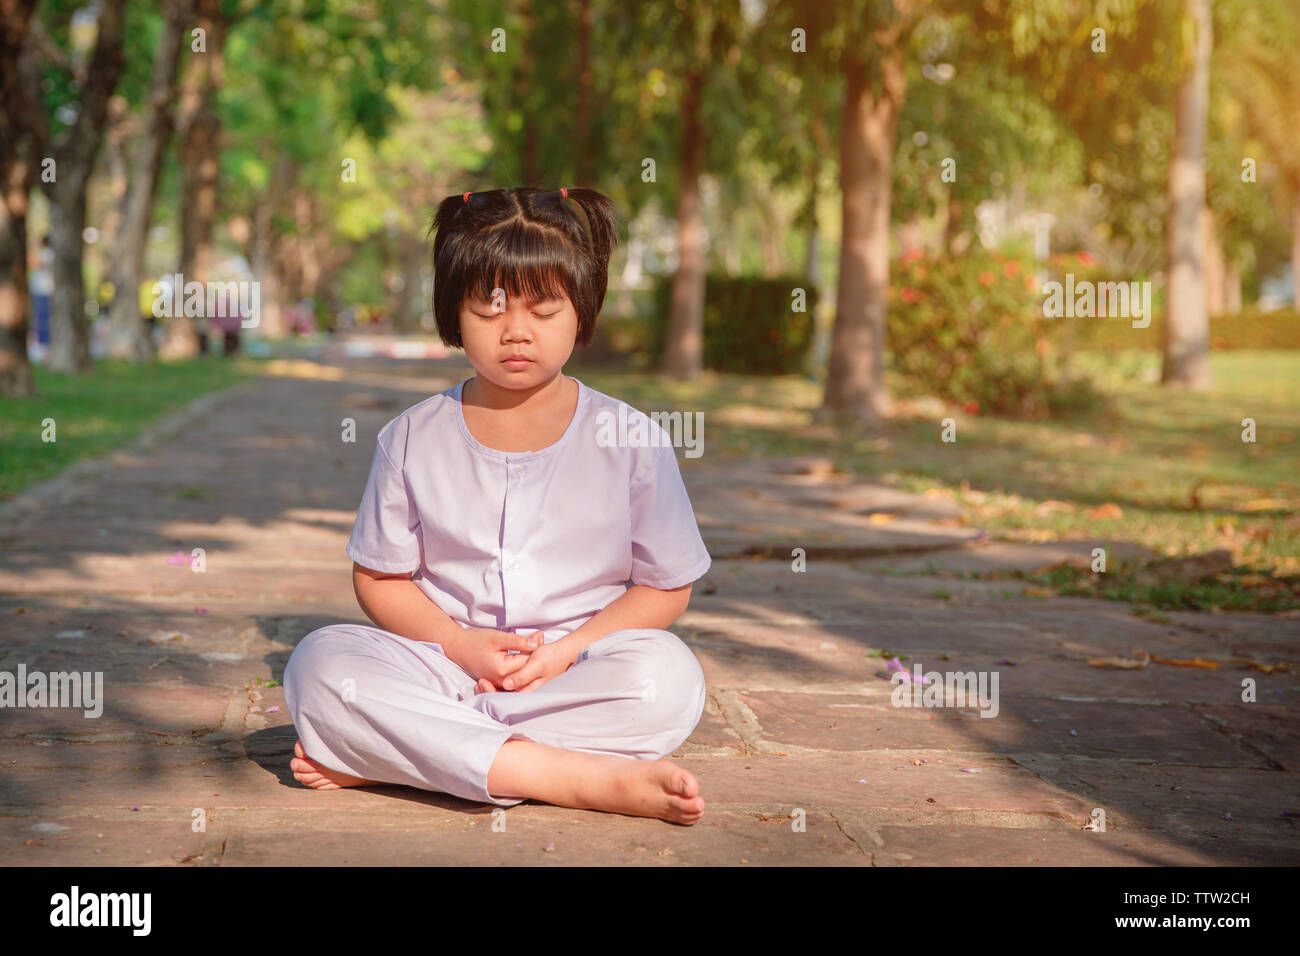 Asian Children Cute Or Kid Girl Sit For Meditation With Peace And Relax In Garden Pavilion At Temple Or Church And Wearing White Dress With Sunlight O Stock Photo Alamy